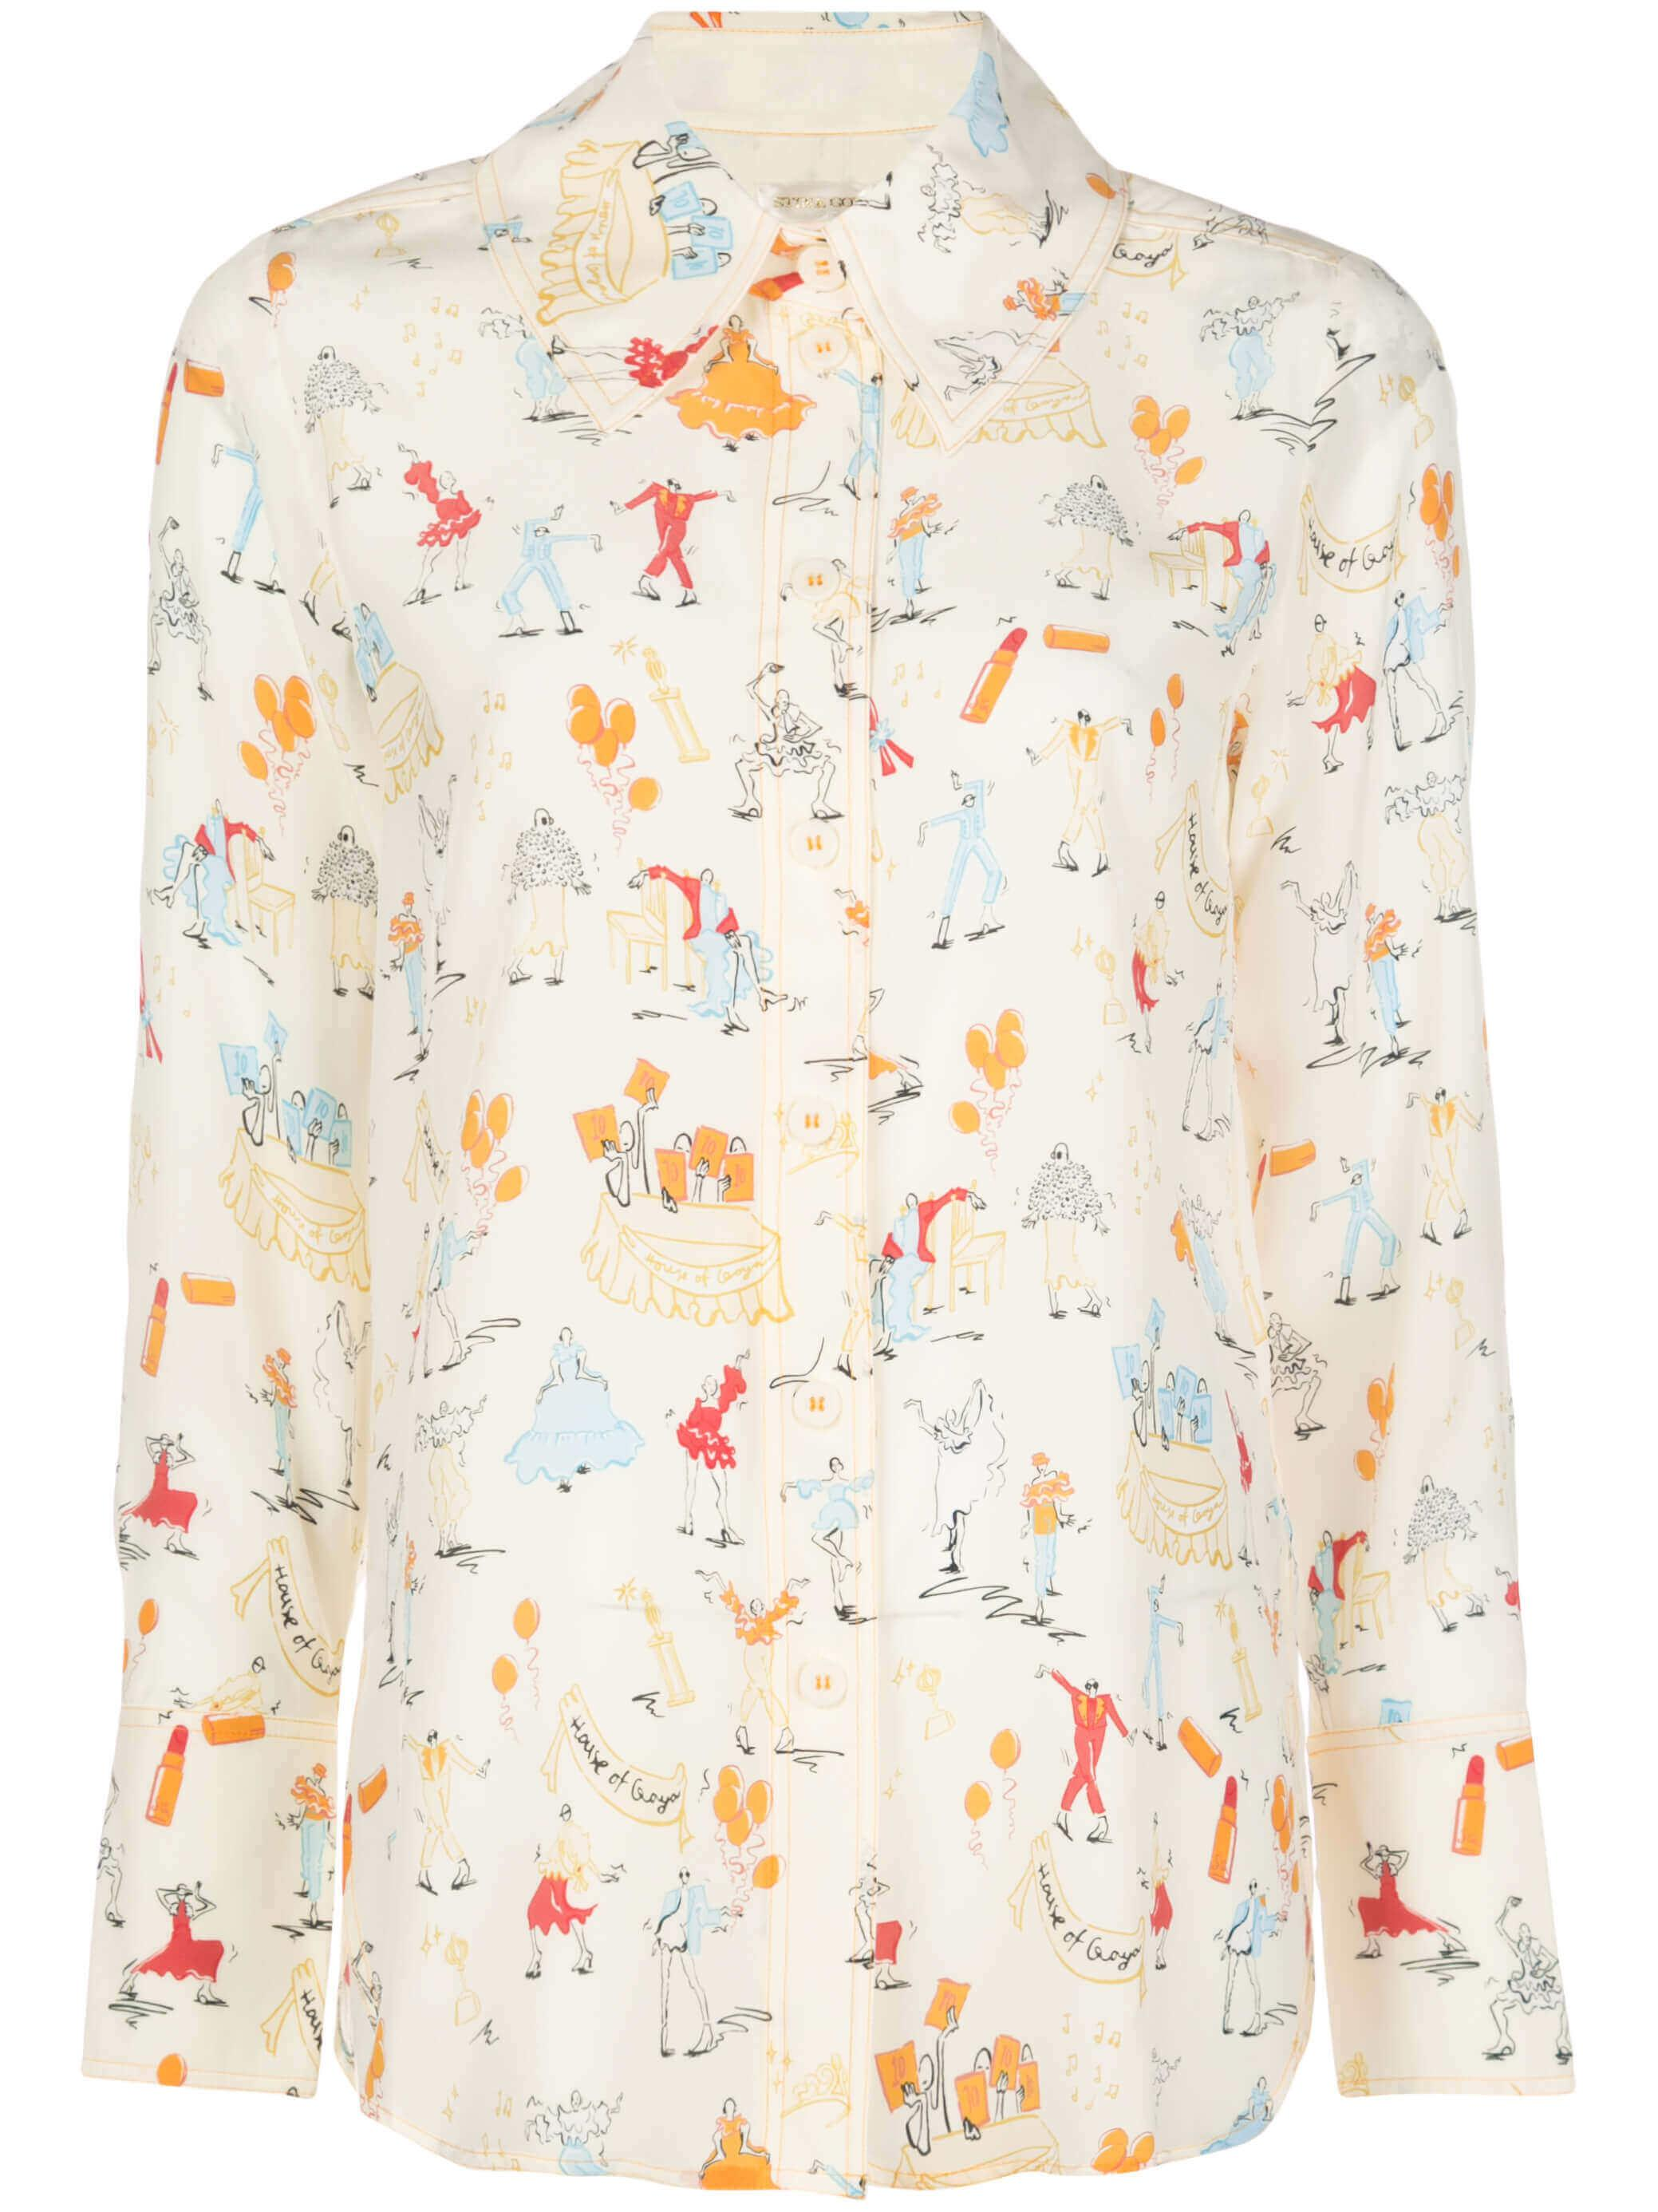 James Dancer Print Silk Button Down